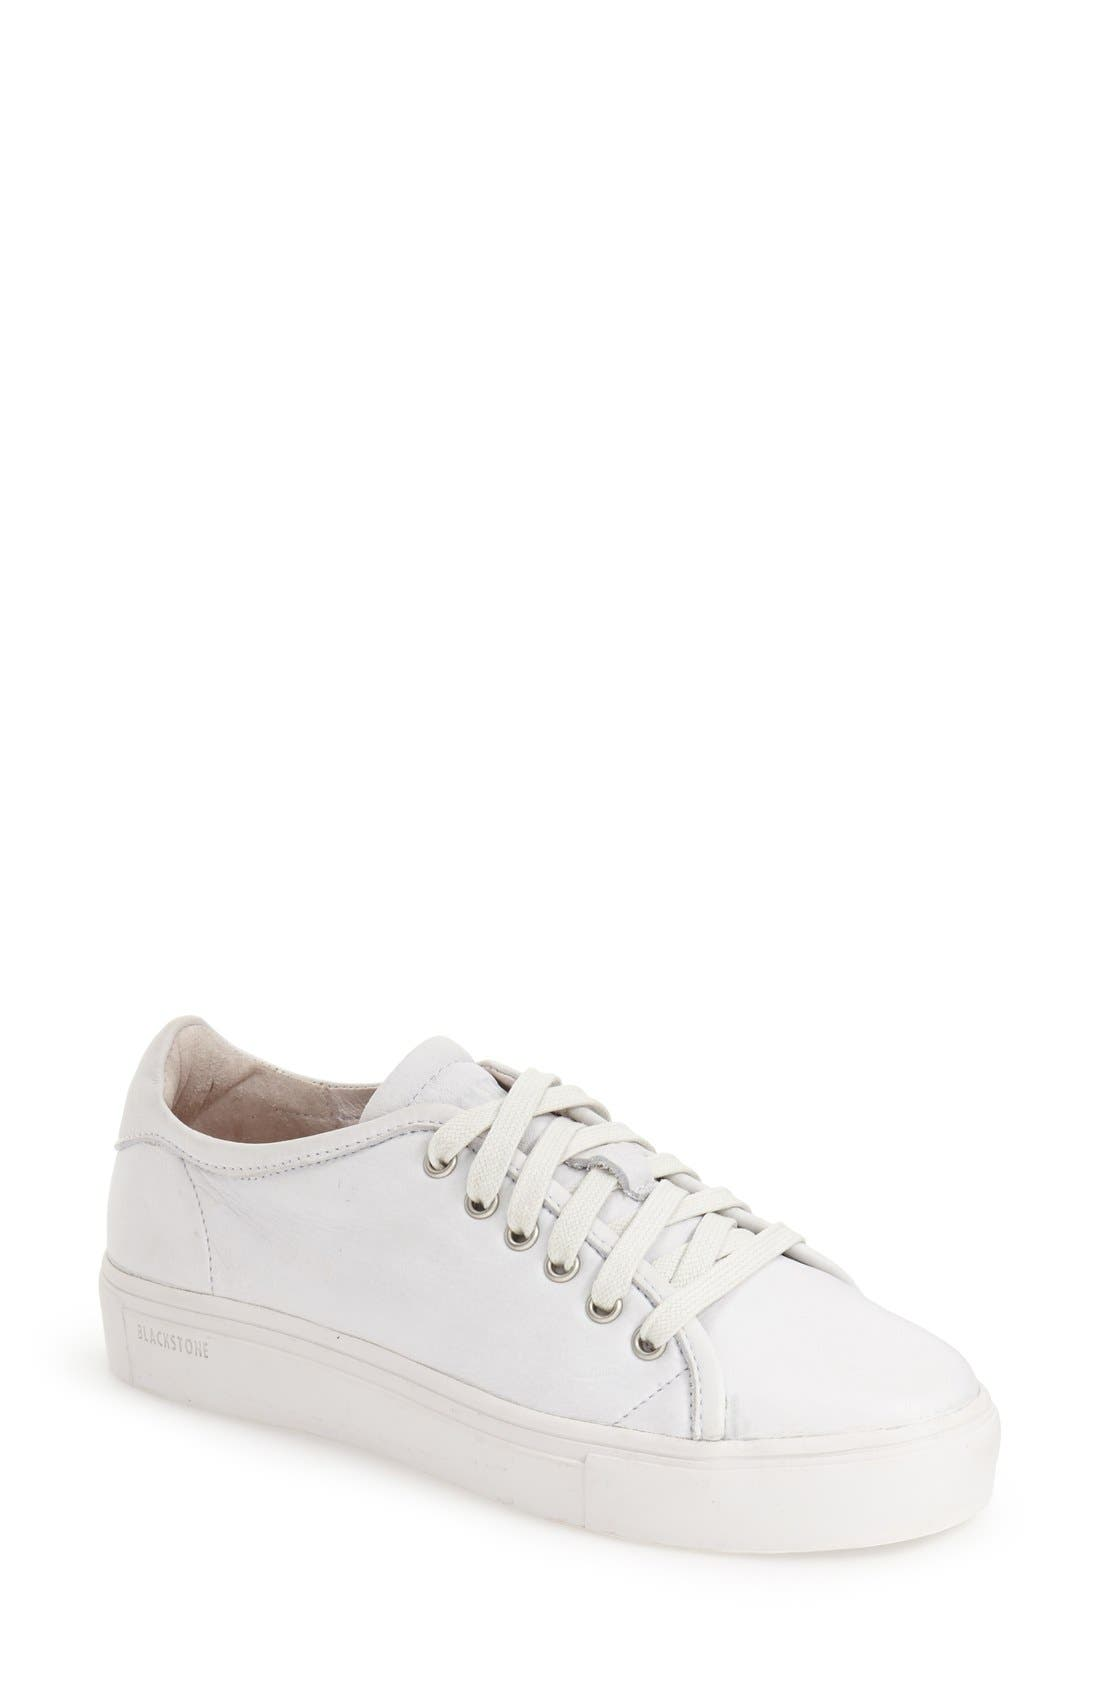 'LL64' Sneaker,                         Main,                         color, White Leather